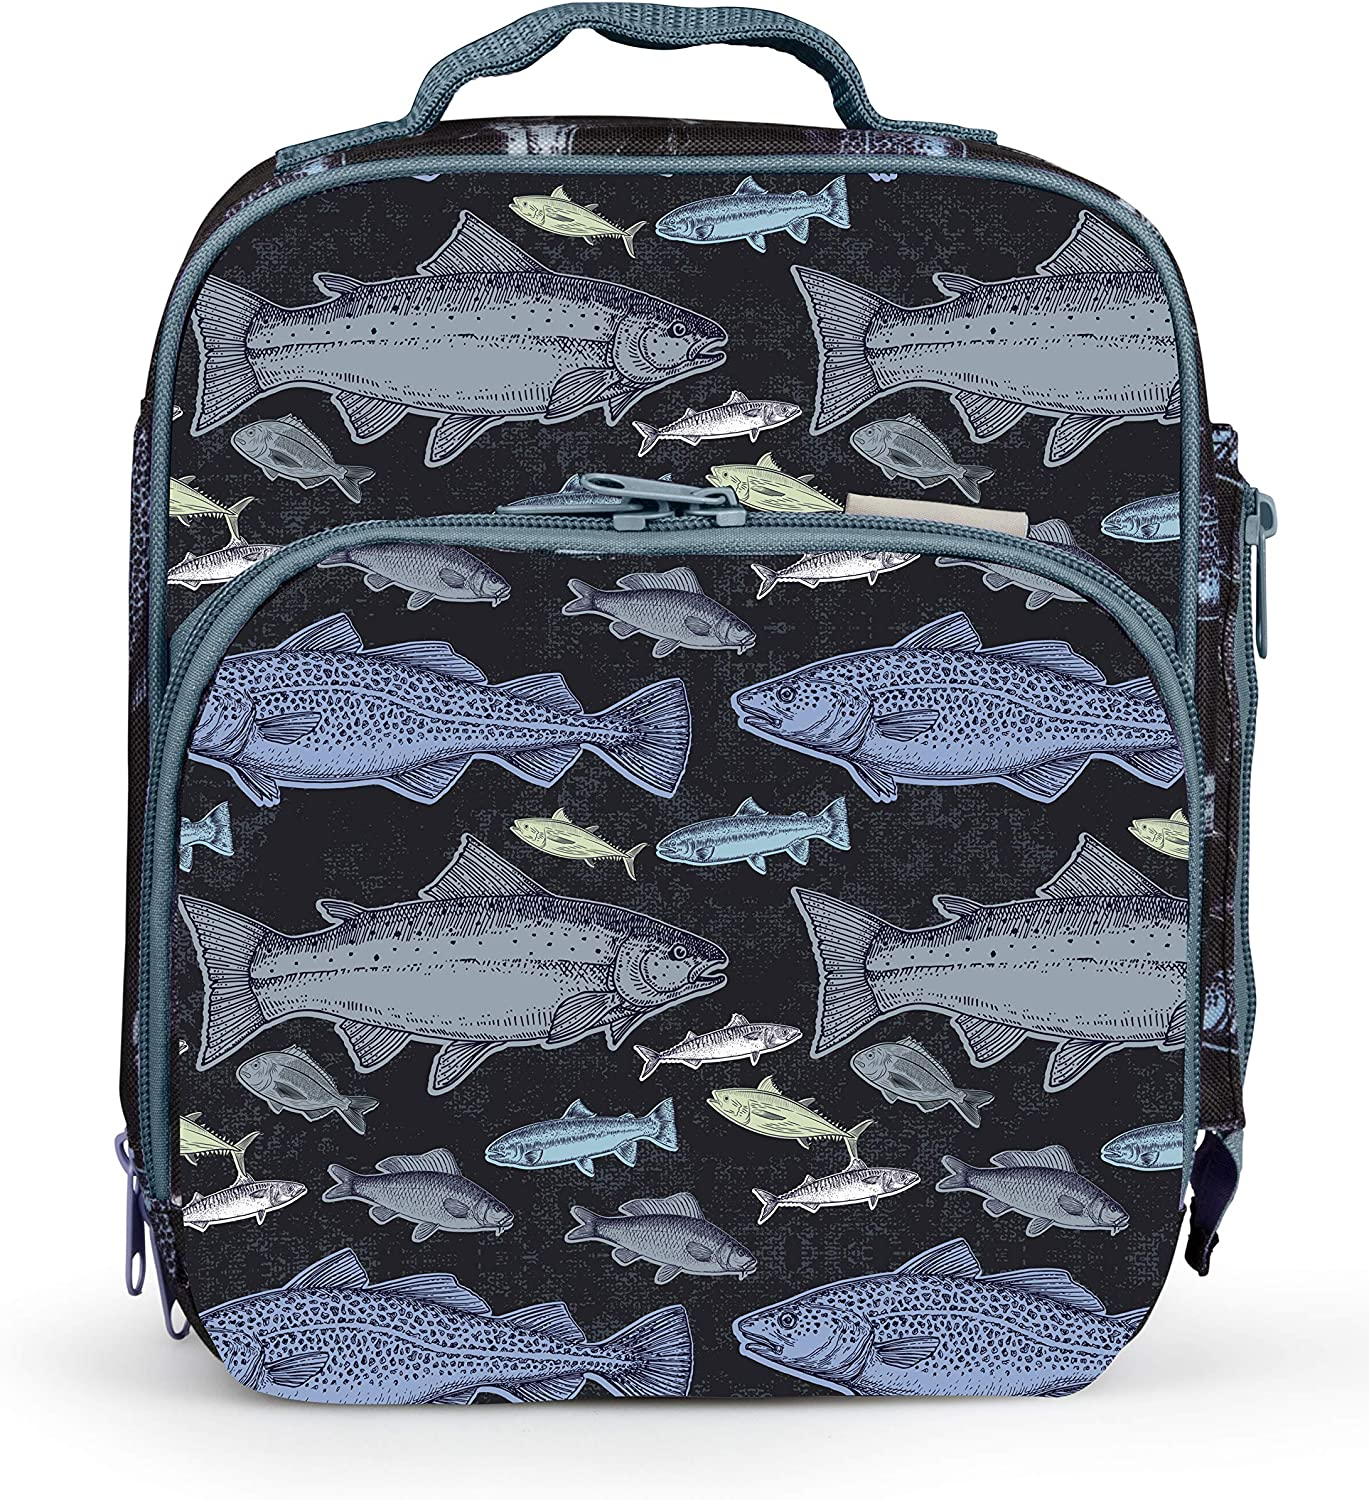 Bentology Lunch Box for Kids - Girls and Boys Insulated Lunchbox Bag Tote - Fits Bento Boxes - Fish